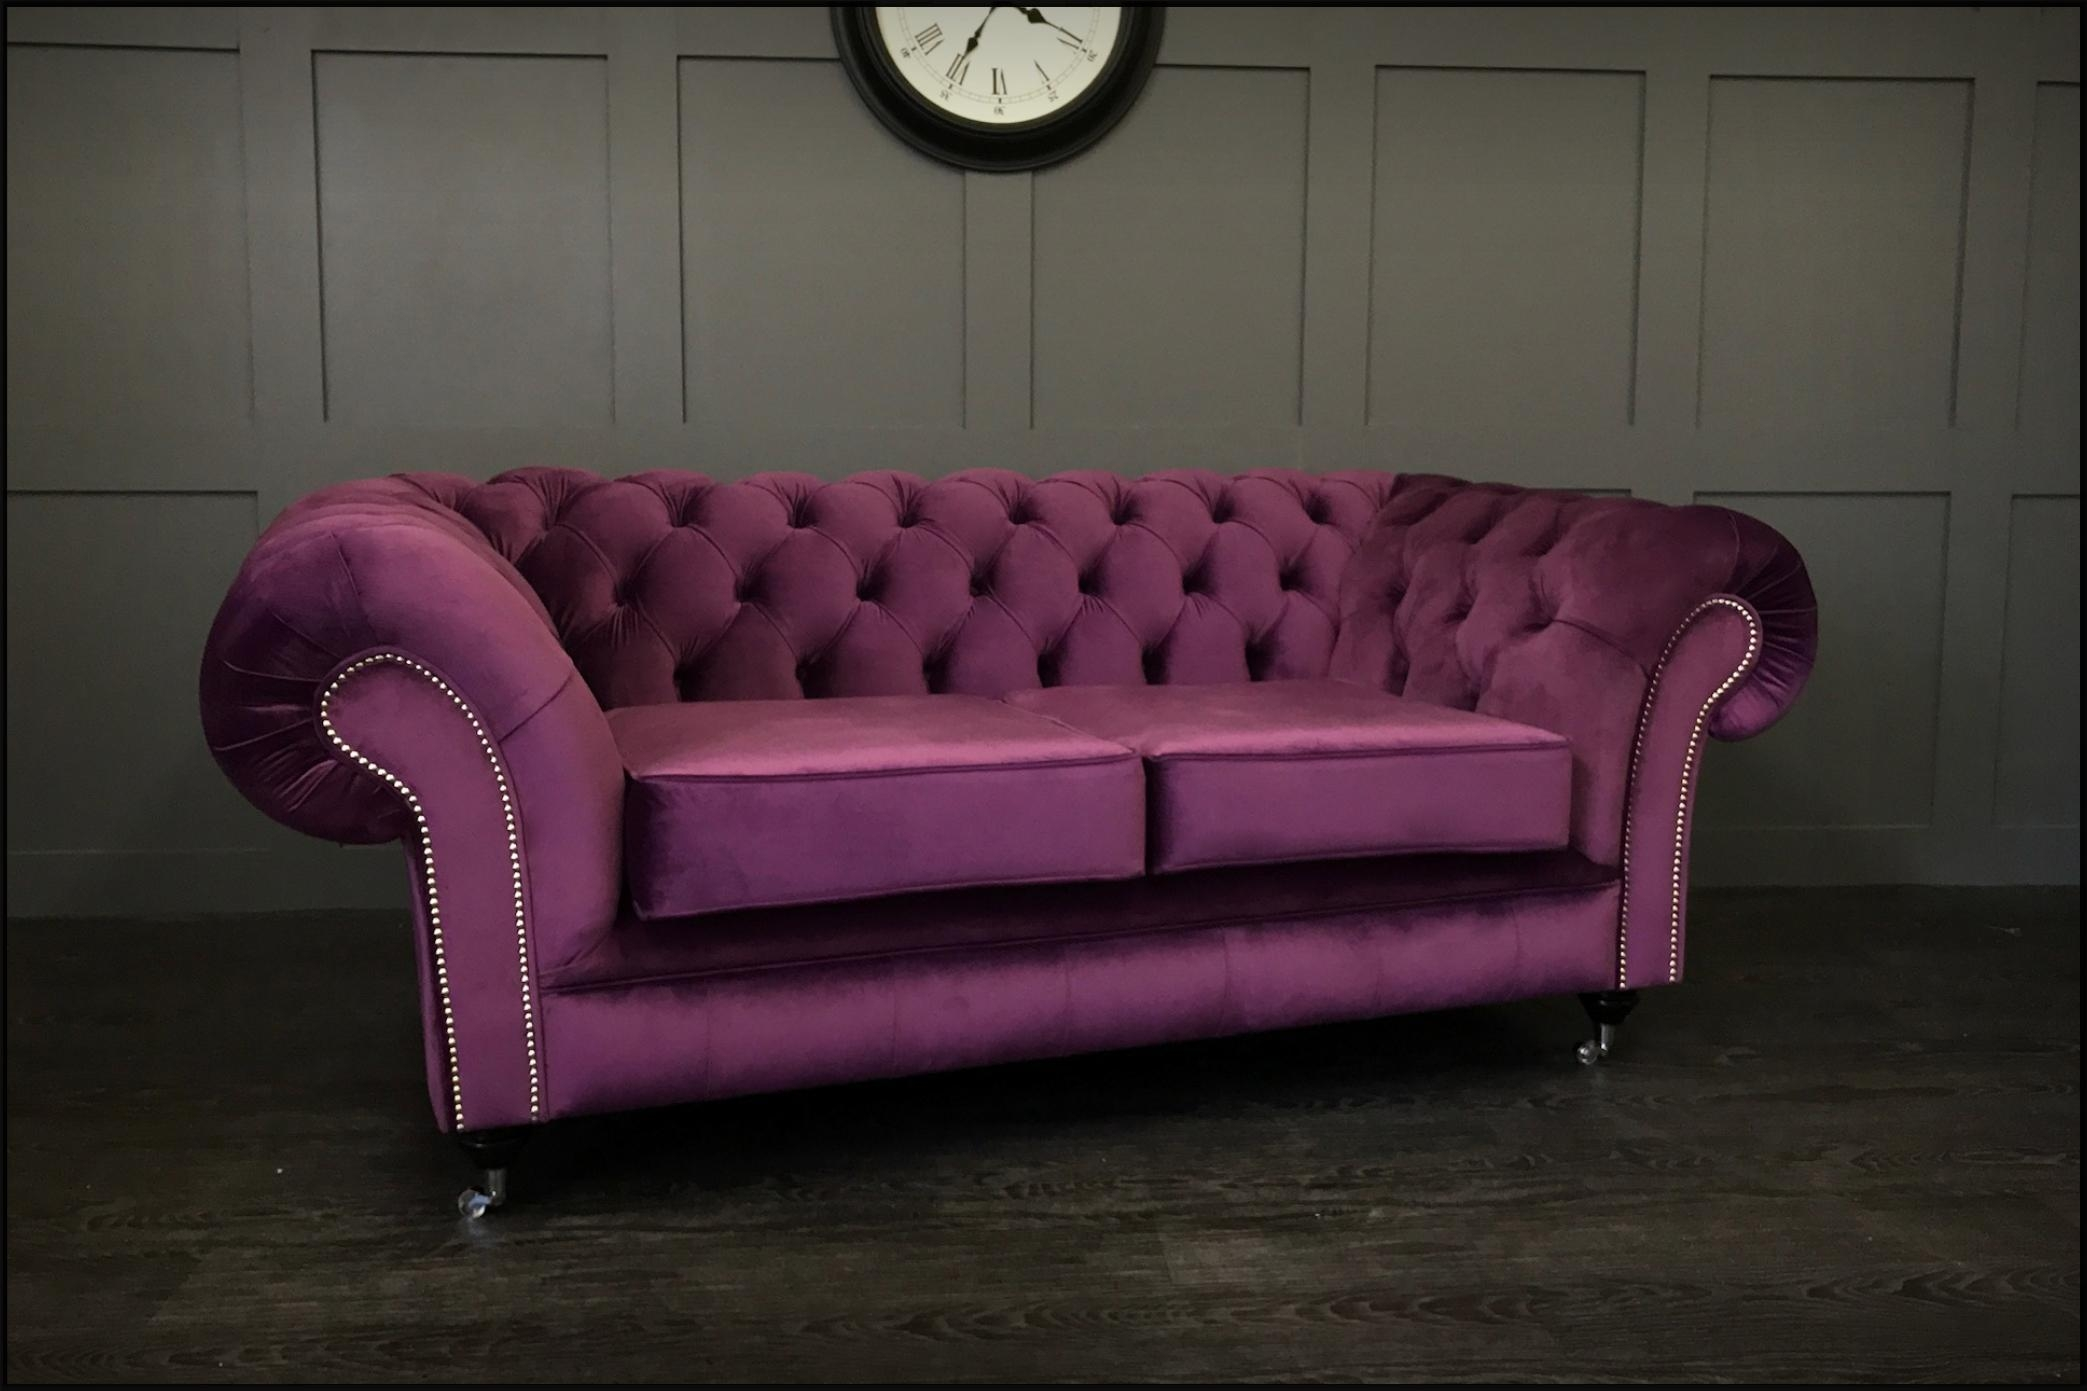 Timeless Chesterfield Sofas – Handmade Leather & Fabric Intended For Manchester Sofas (View 11 of 20)